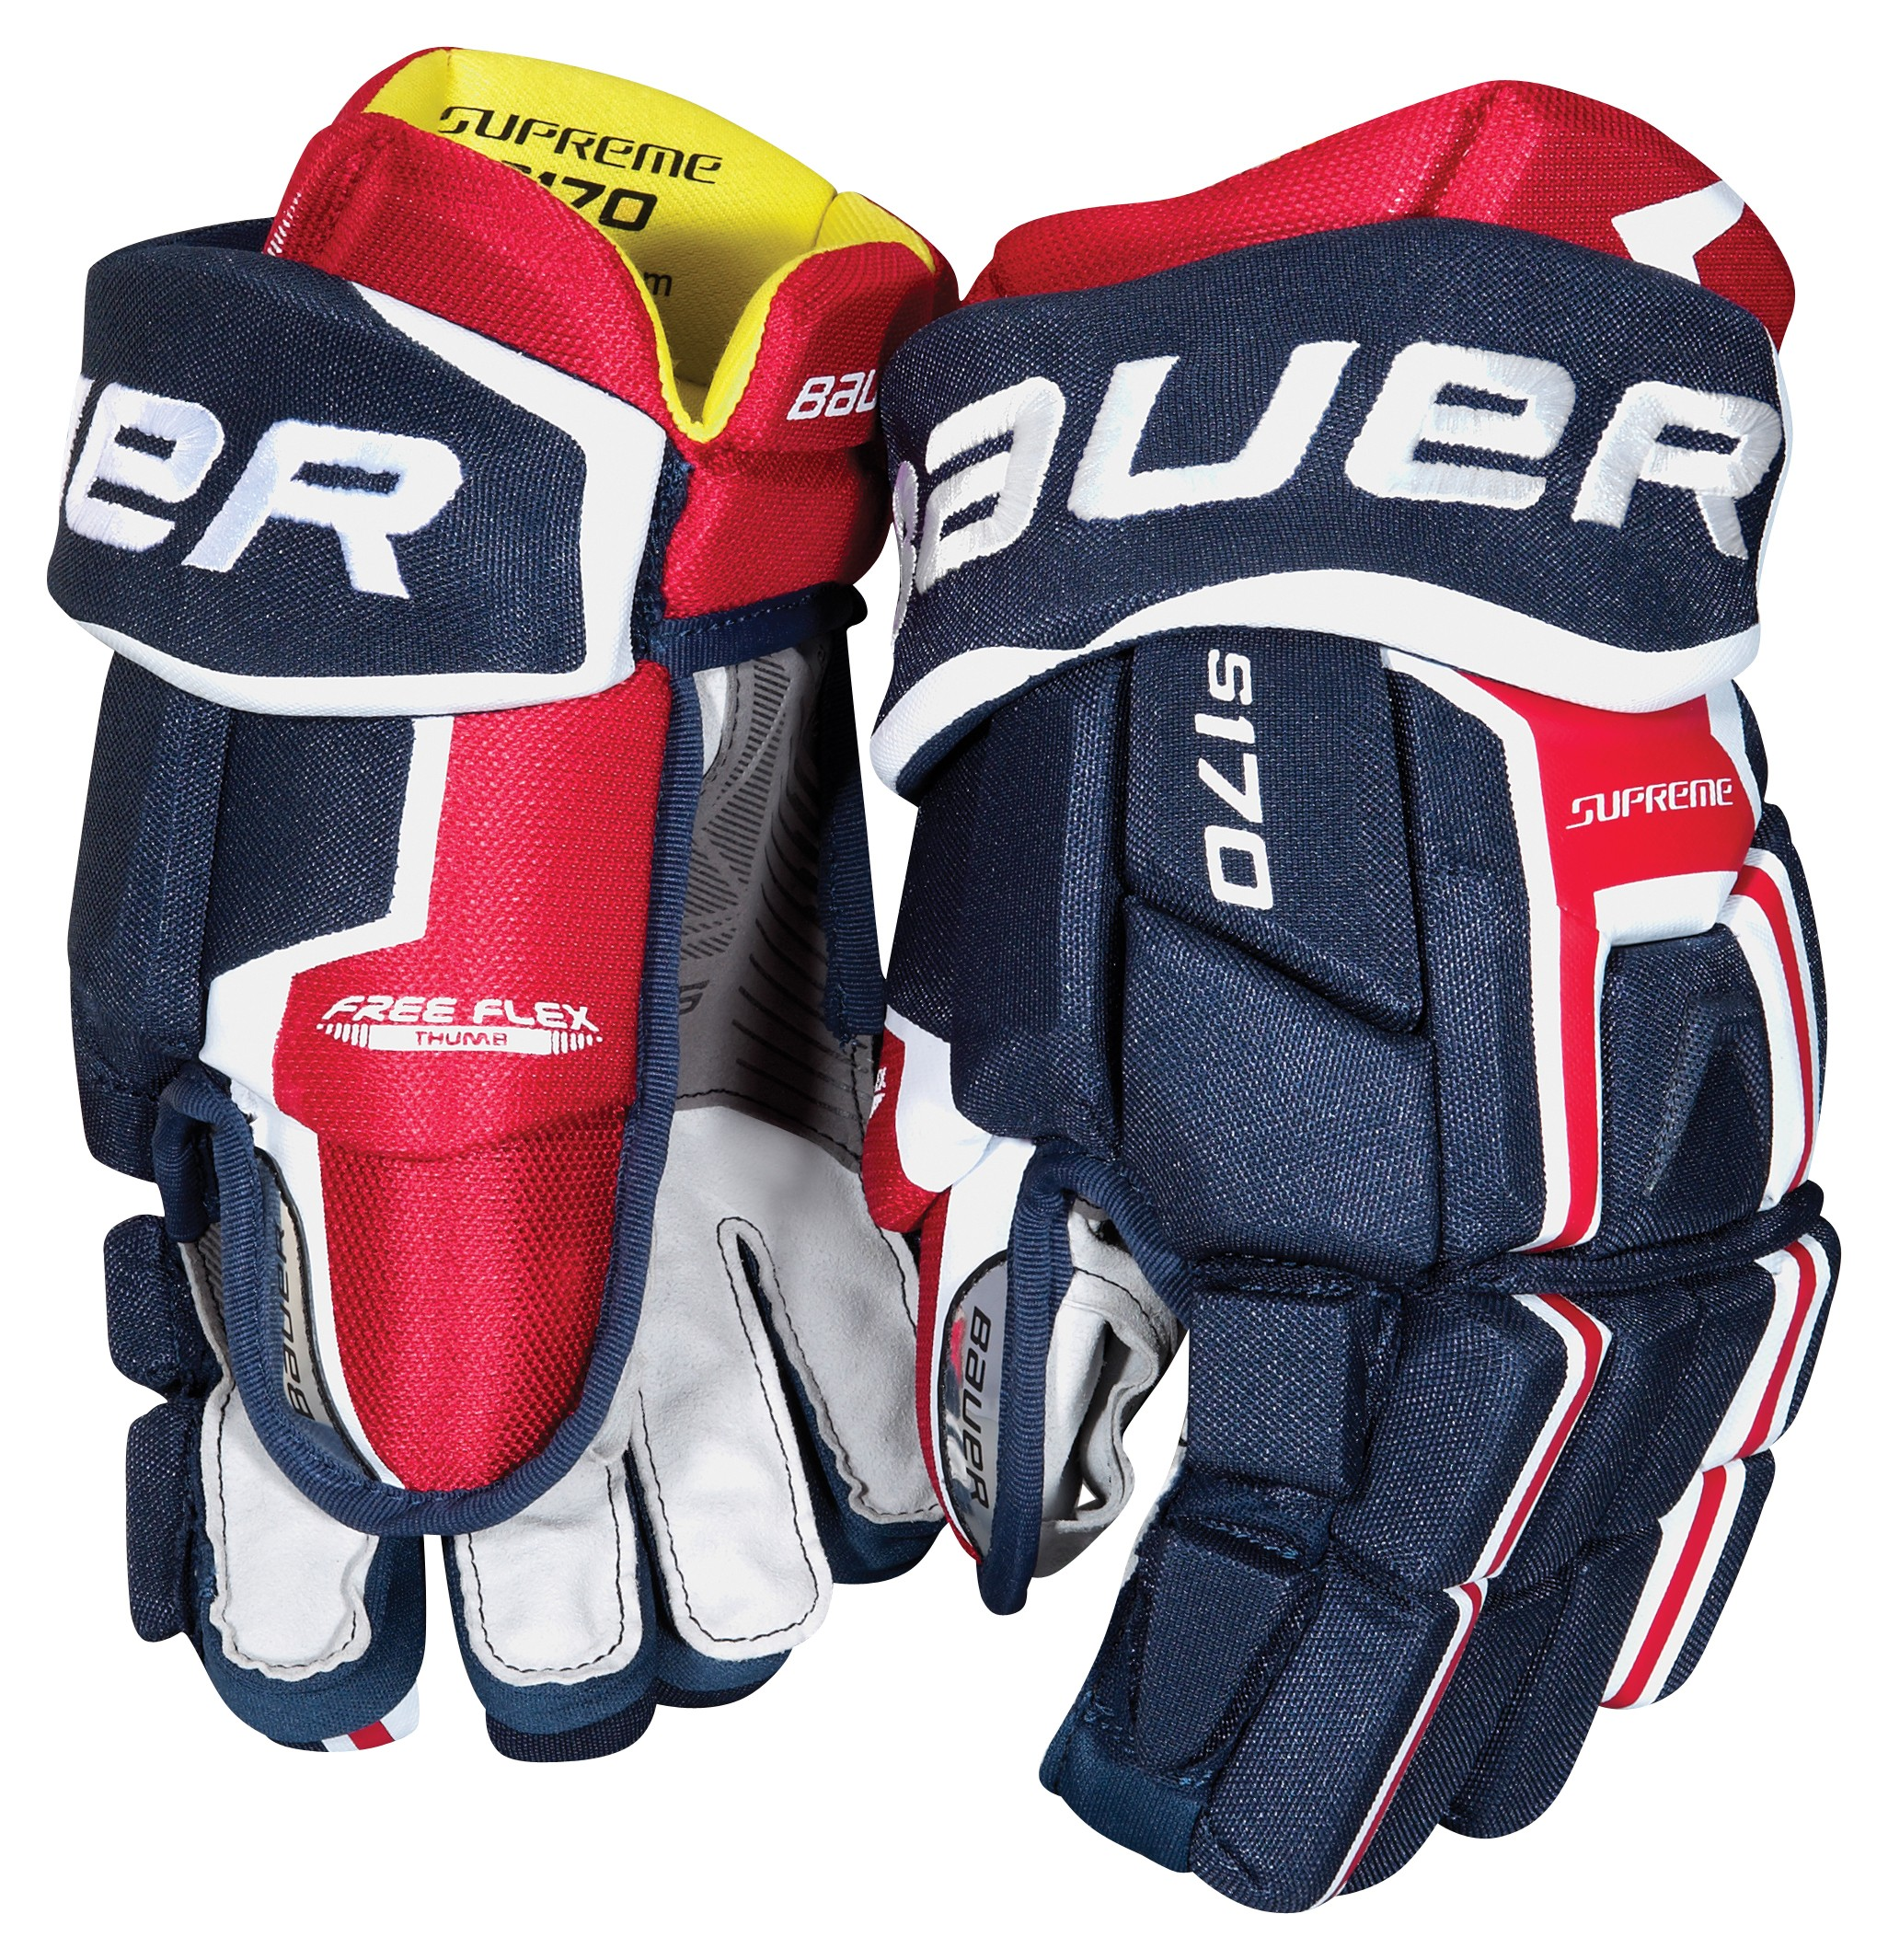 Hokejové rukavice BAUER SUPREME S170 junior empty 89131b2b58